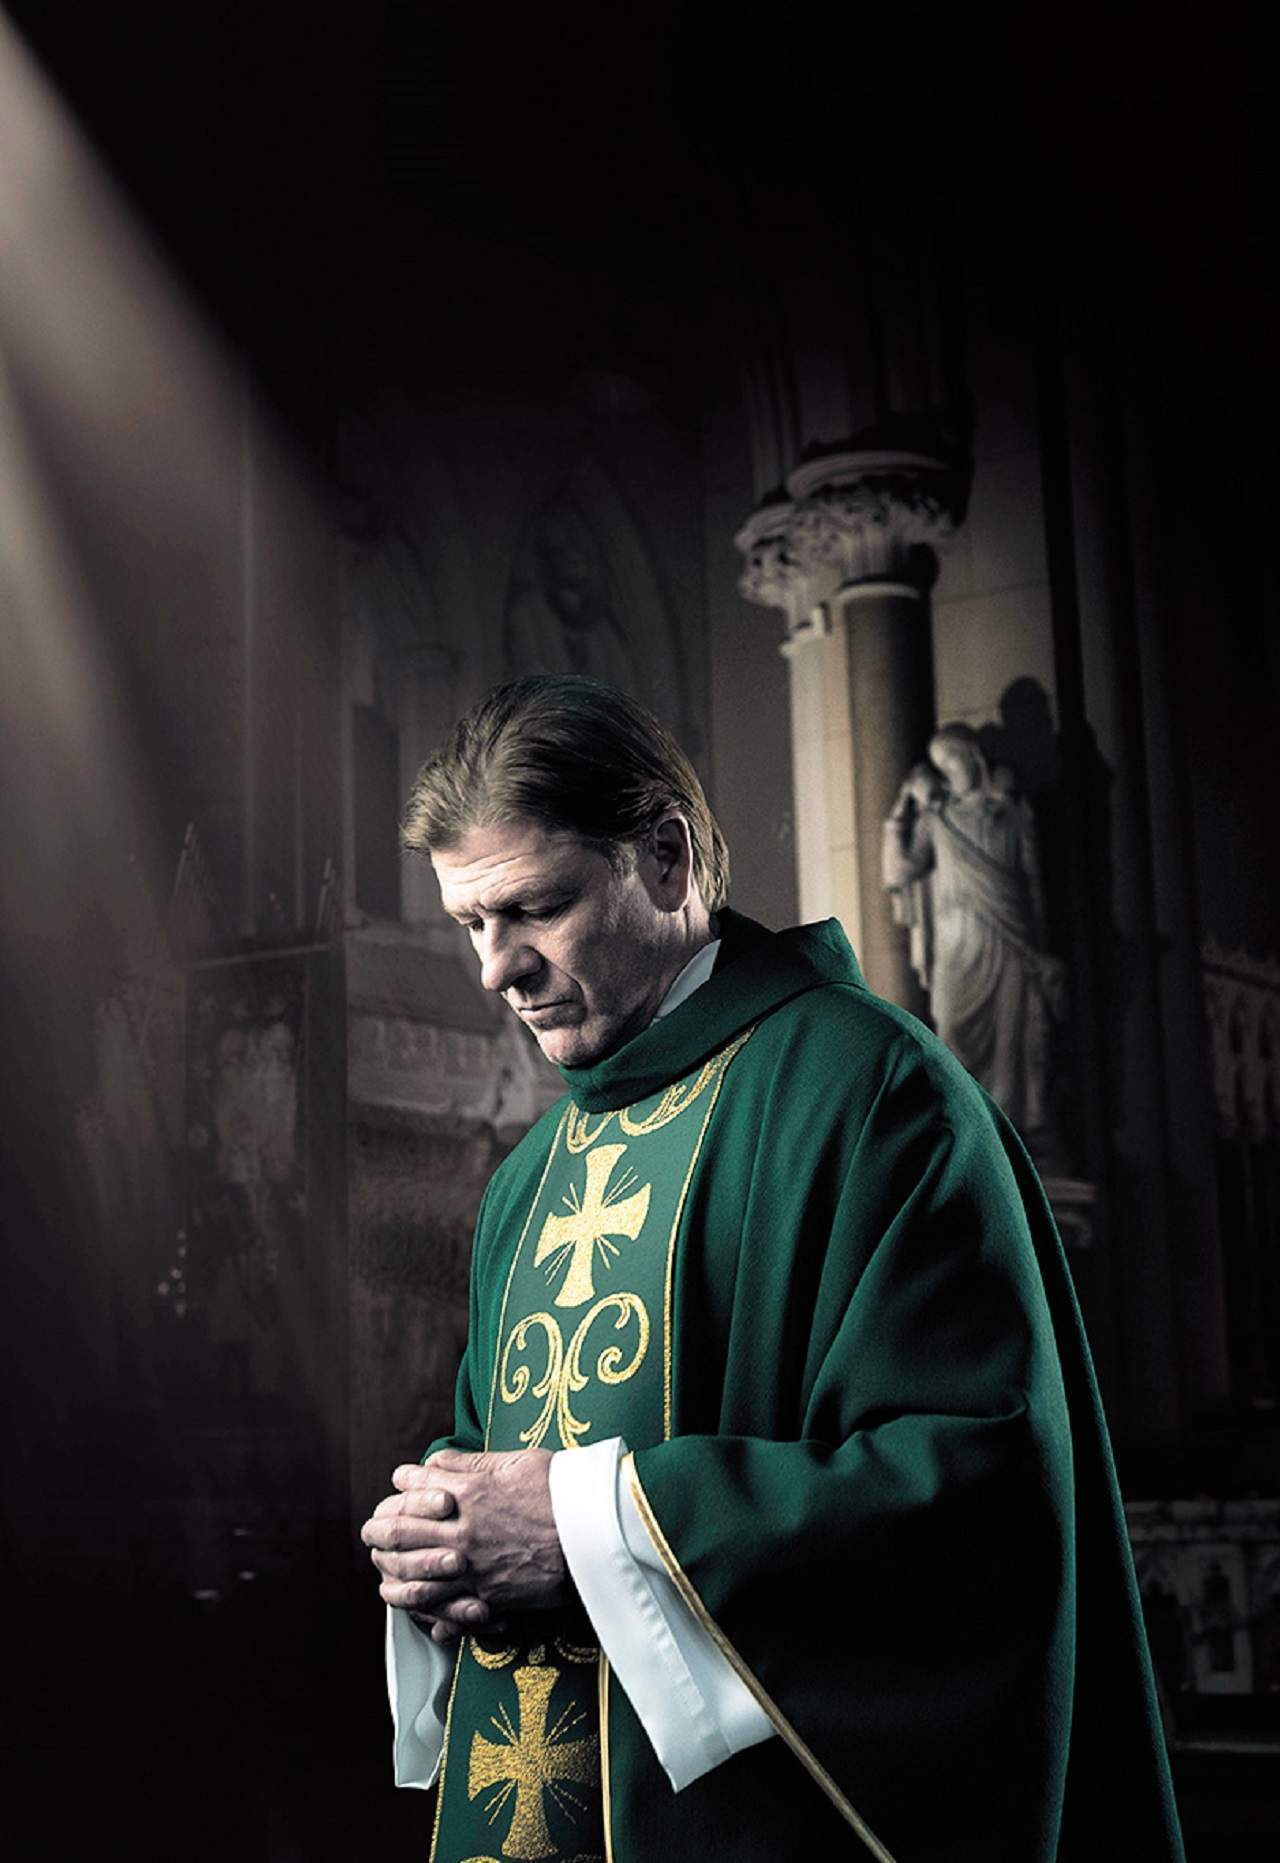 Broken and The Trial: From Sean Bean playing a priest to real life lawyers